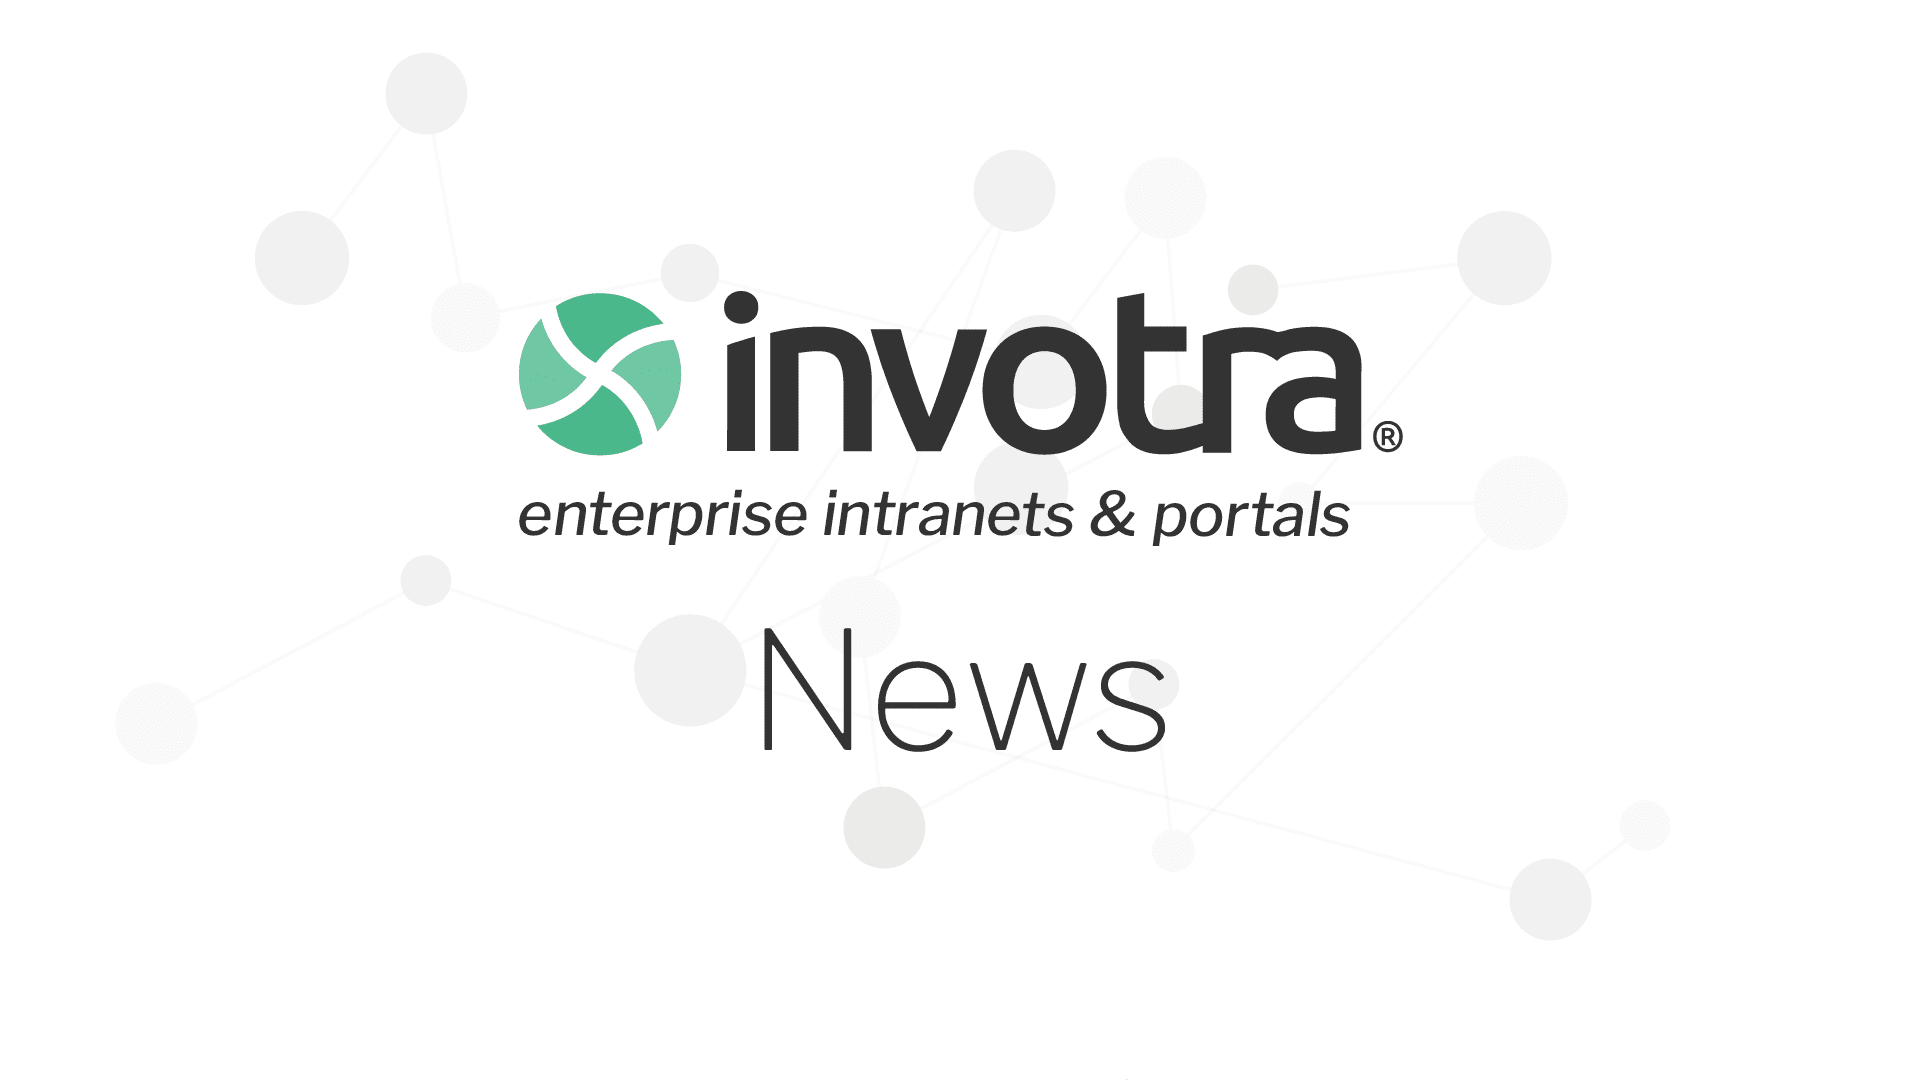 Invotra News banner